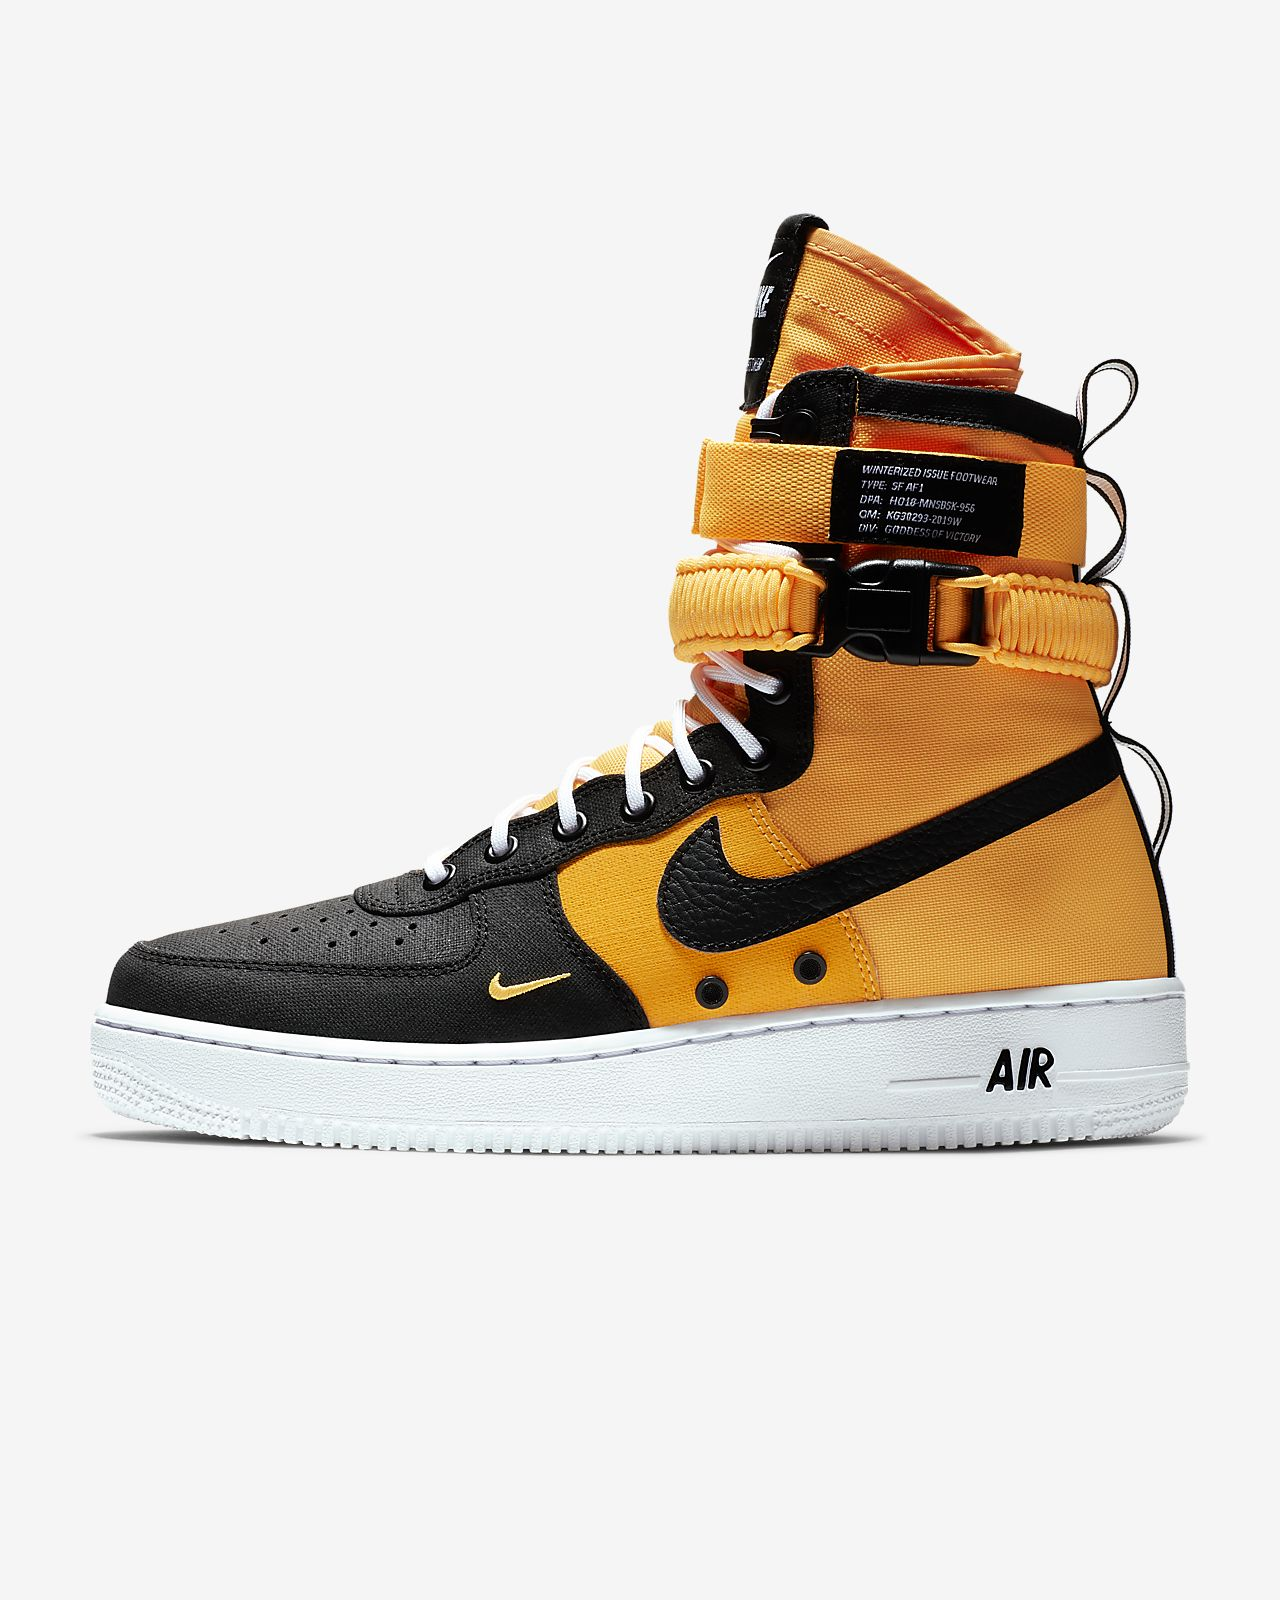 half off 1c3dc 78b15 ... Nike SF Air Force 1 Mens Boot